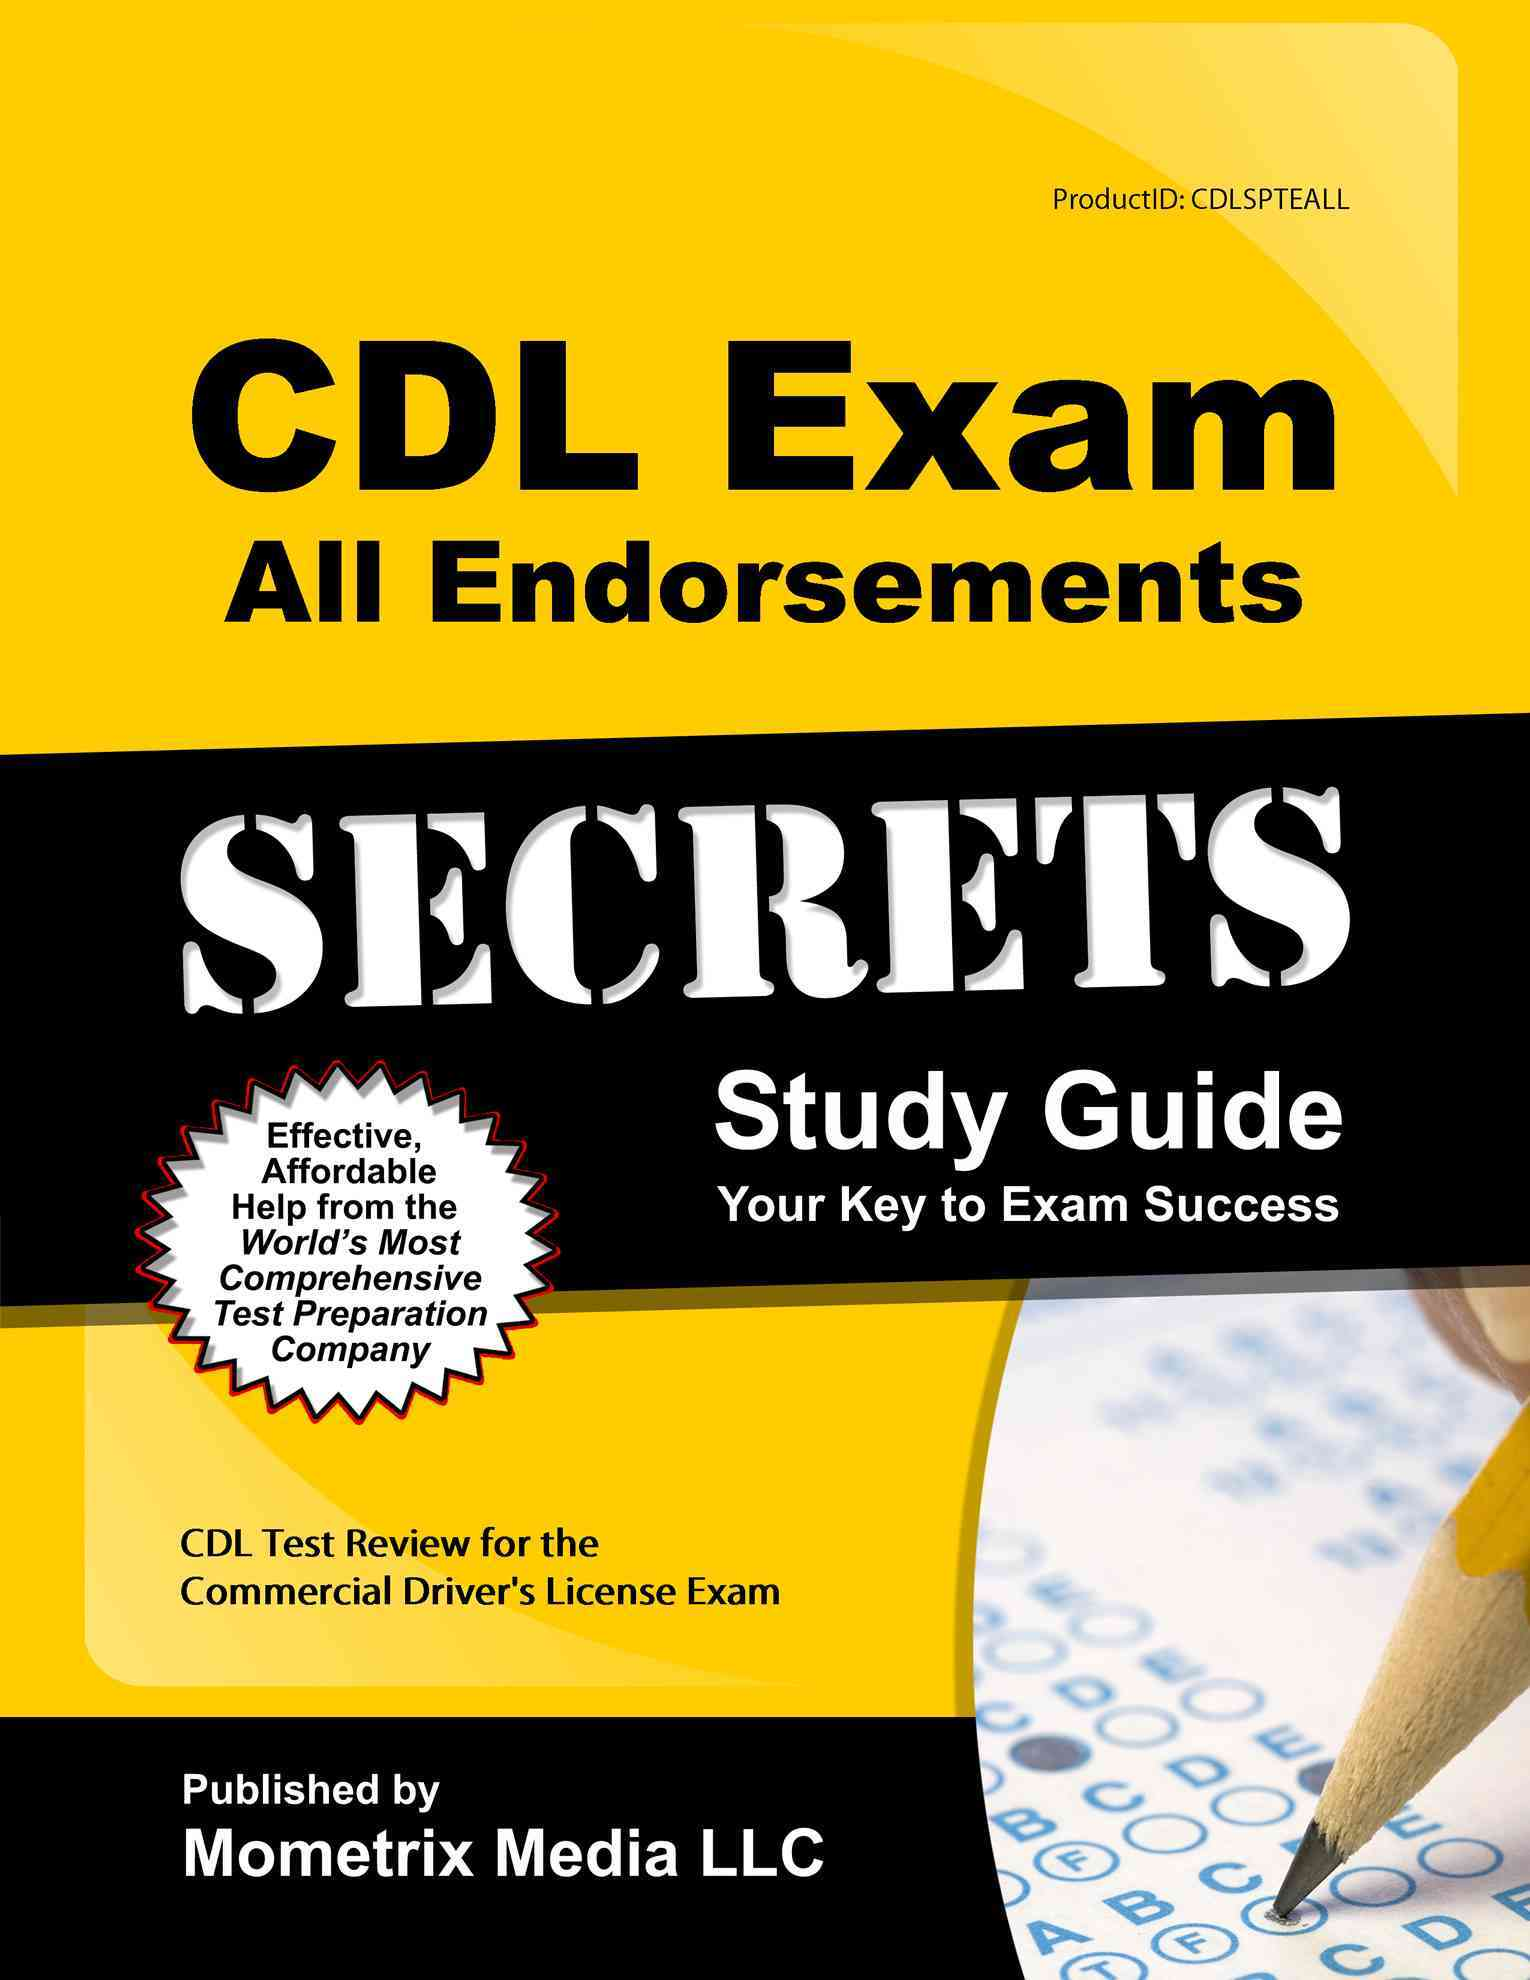 CDL Exam Secrets & CDL Practice Test & All Cdl Endorsements Study Guide By Cdl Exam Secrets (EDT)